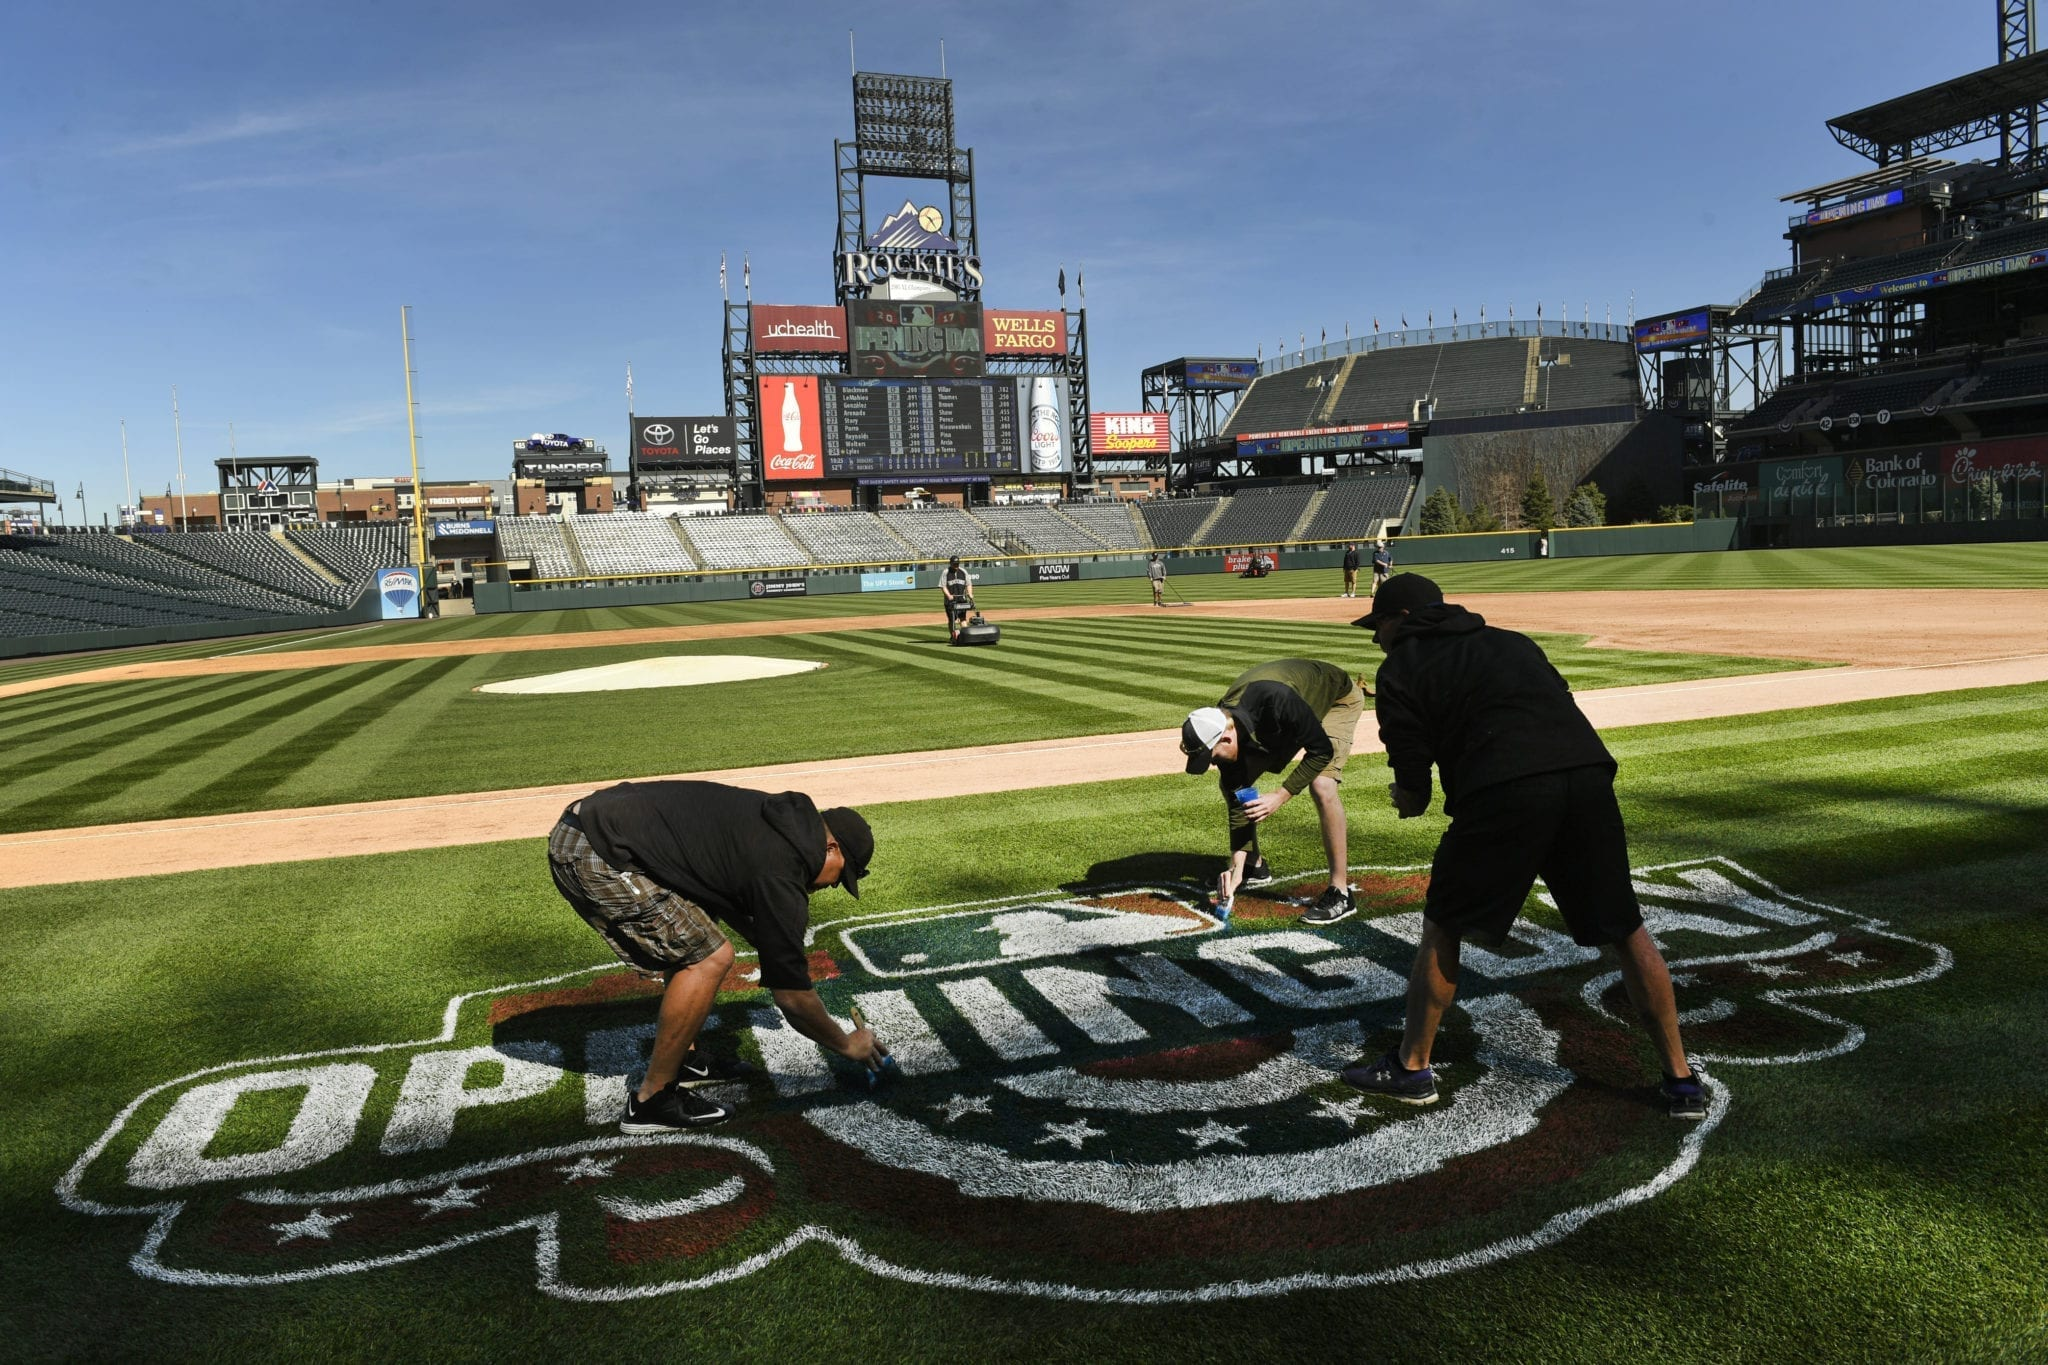 The Colorado Rockies Home Opener on April 5th, 2019.